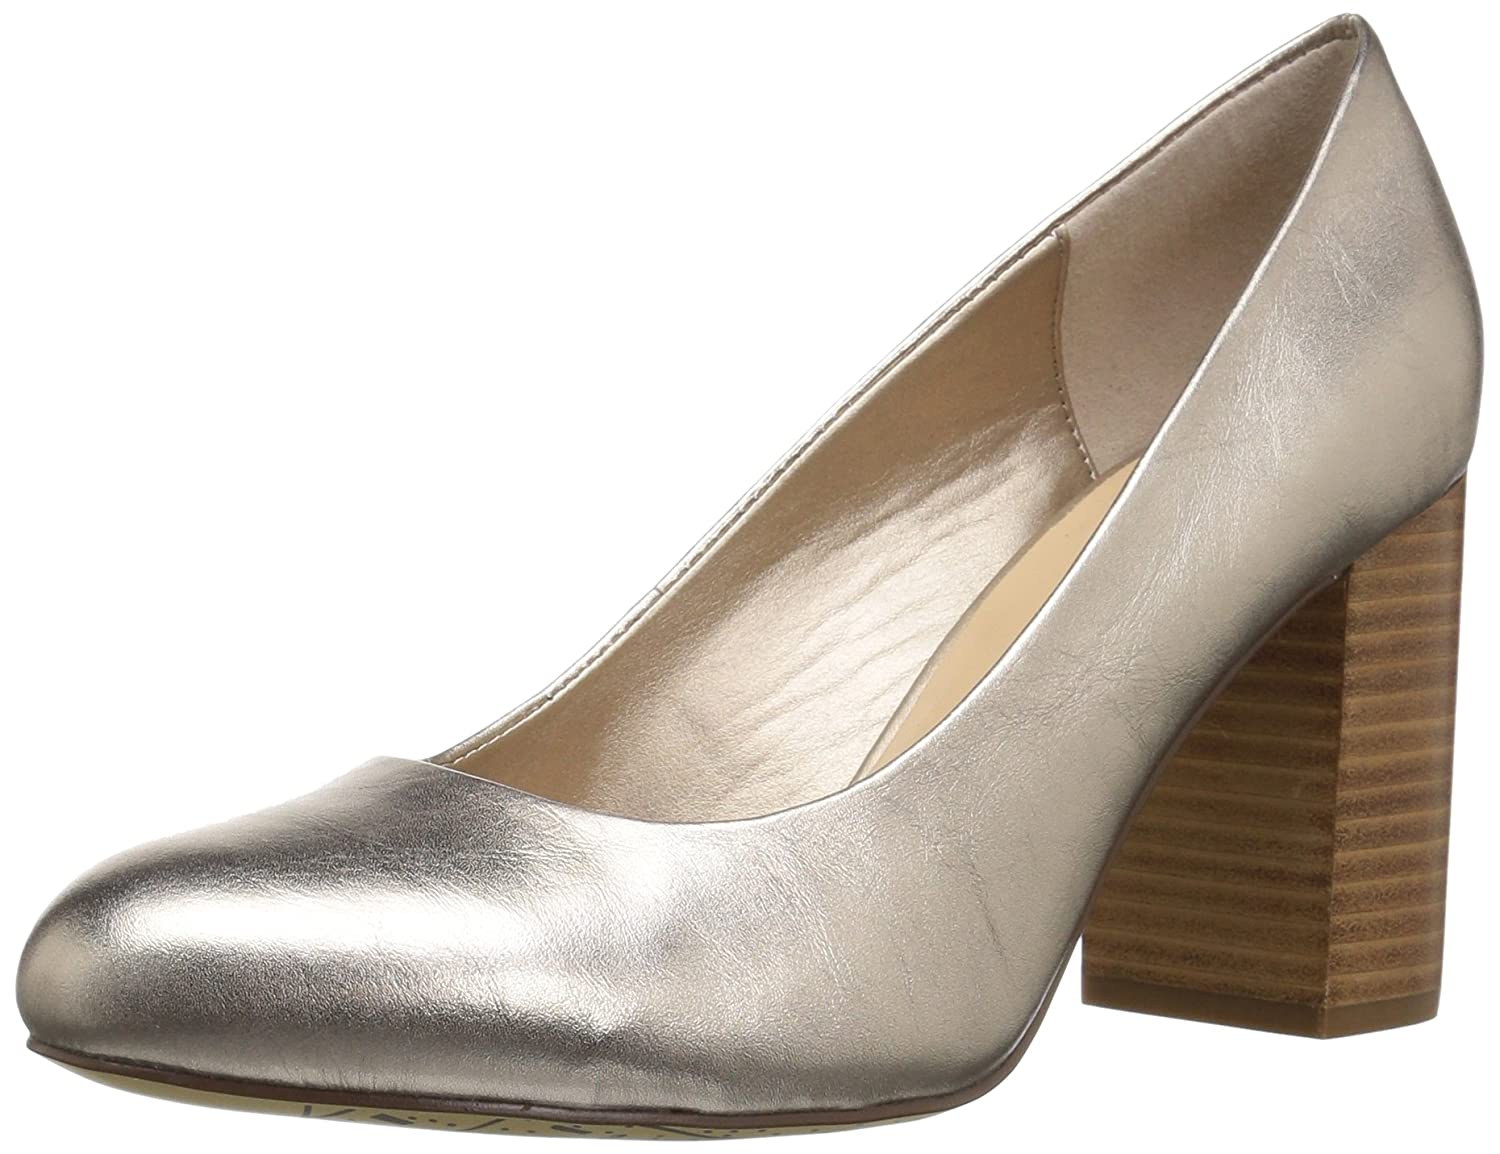 Champagne Leather Bella Vita Wohommes Nara Dress Pump 39 2W EU